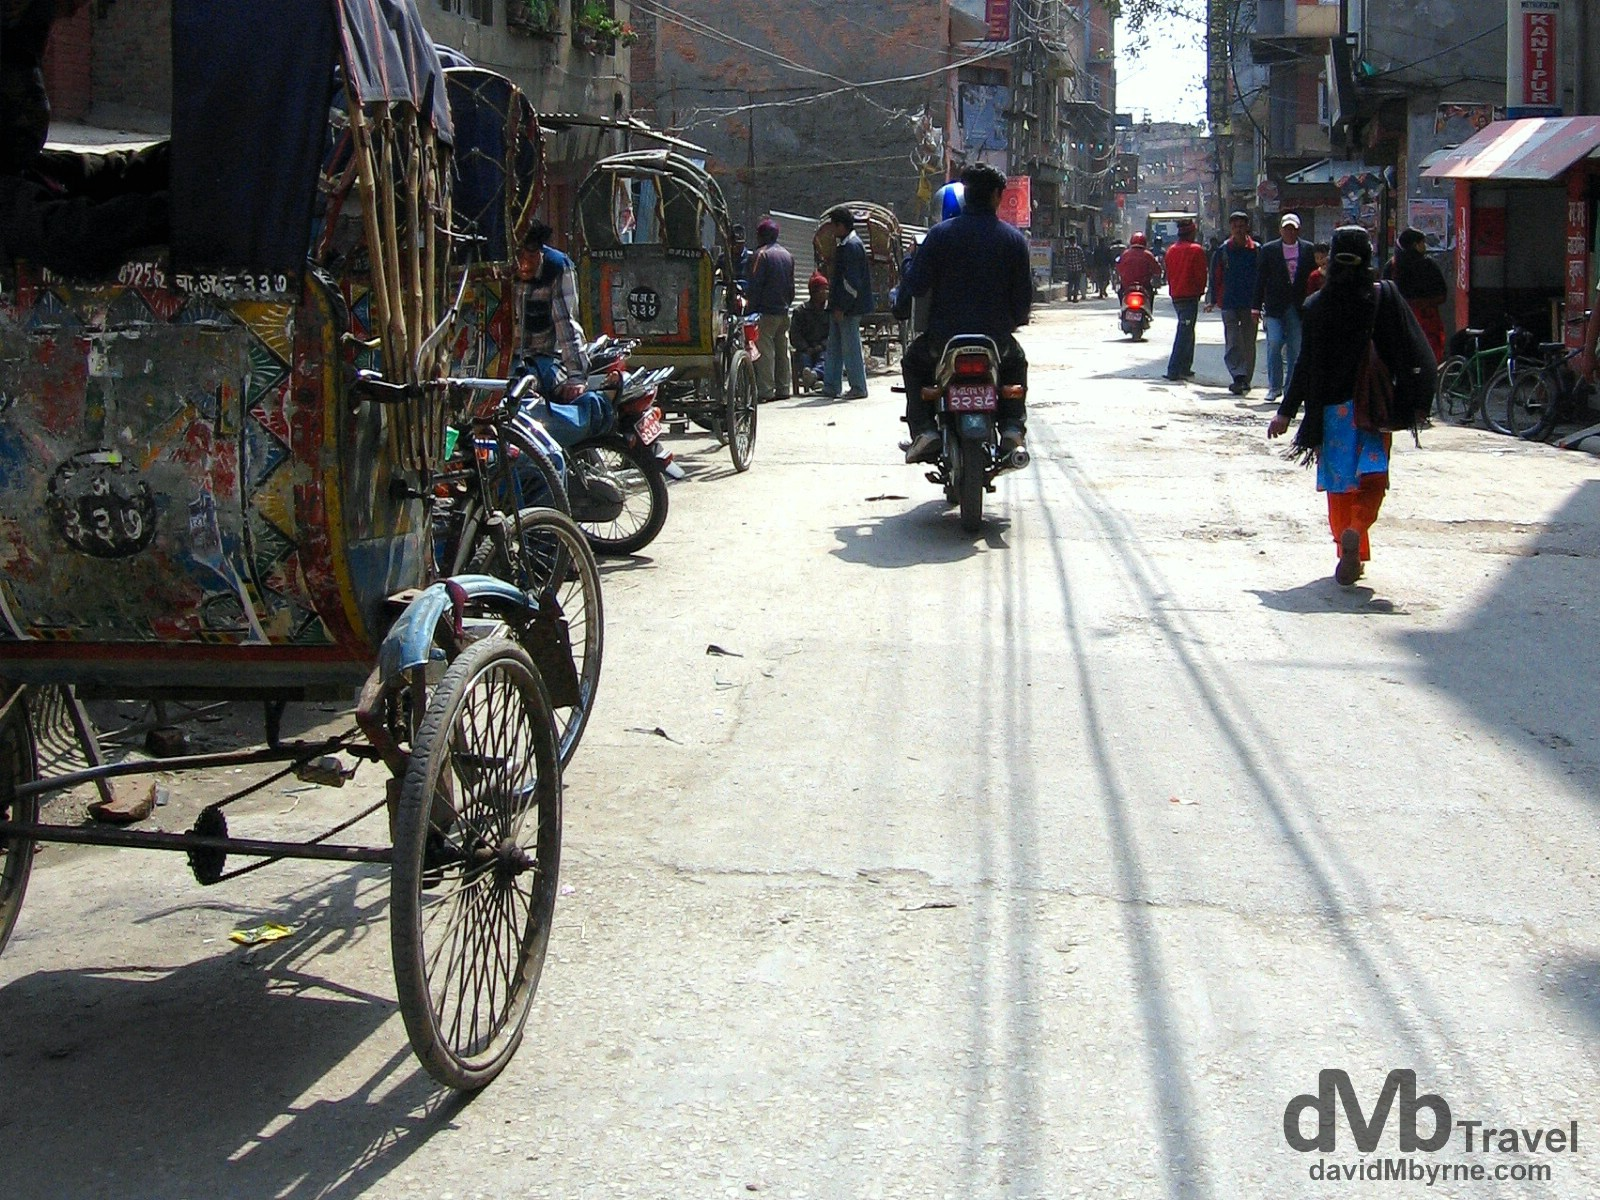 On the streets of Kathmandu, Nepal. March 7, 2008.